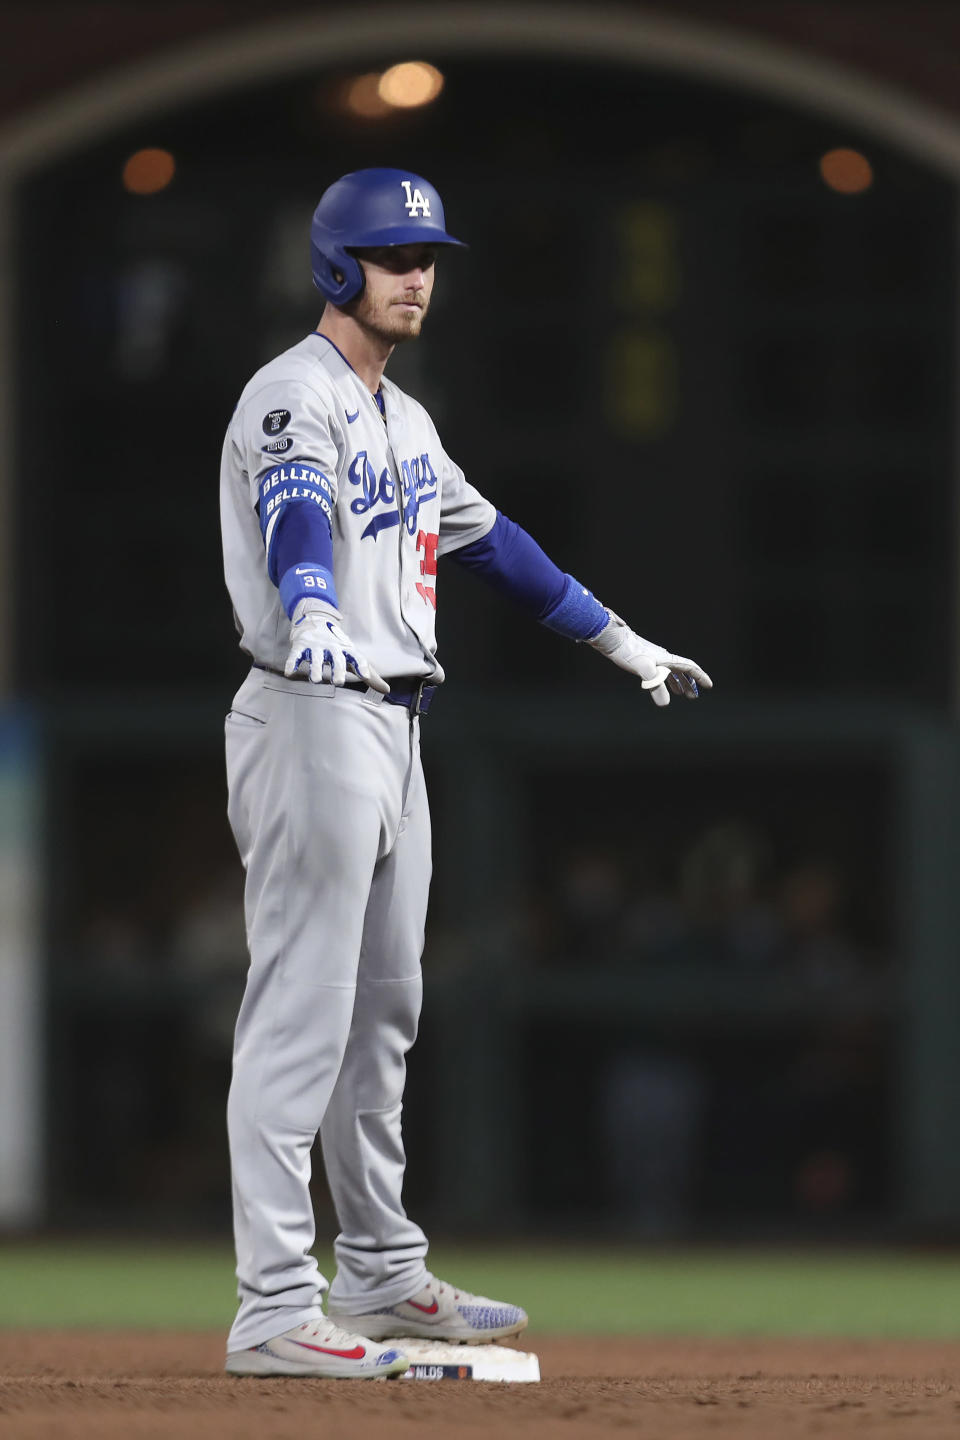 Los Angeles Dodgers' Cody Bellinger gestures after hitting a two-run double against the San Francisco Giants during the sixth inning of Game 2 of a baseball National League Division Series Saturday, Oct. 9, 2021, in San Francisco. (AP Photo/Jed Jacobsohn)